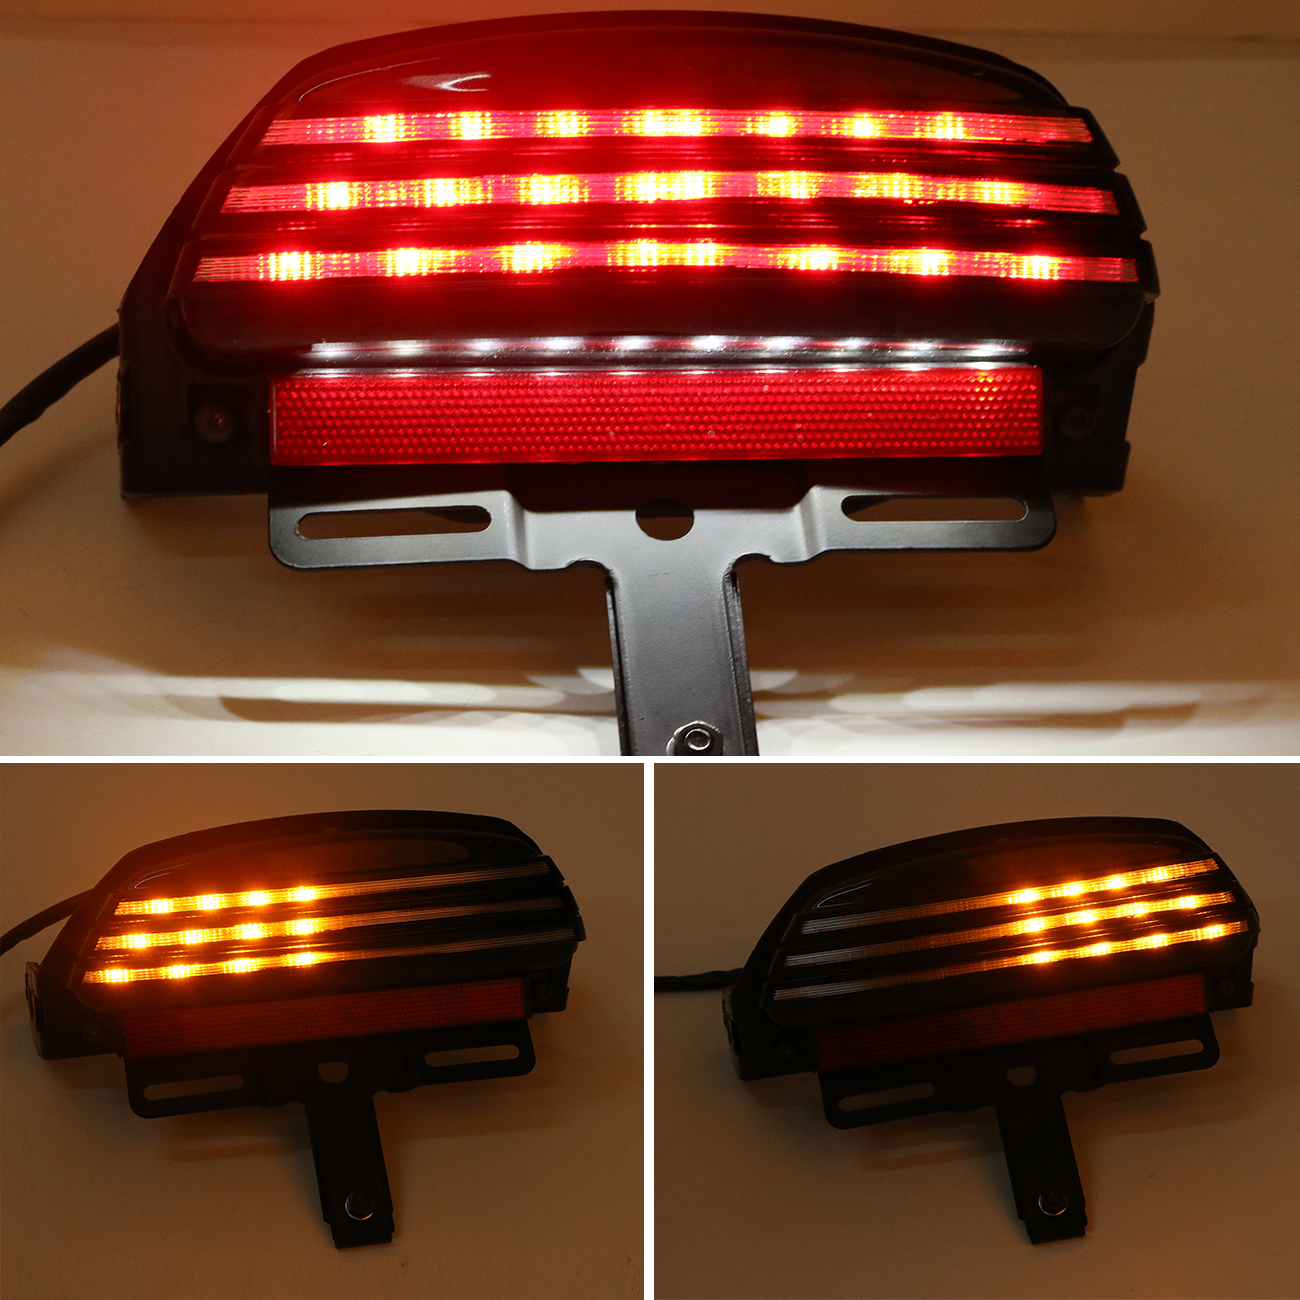 ФОТО Clear LED Rear Turn Signal Taillight with License Plate Bracket For Harley Davidson FXST FXSTB FXSTC FXSTS FLSTSB FXSTSSE #58188